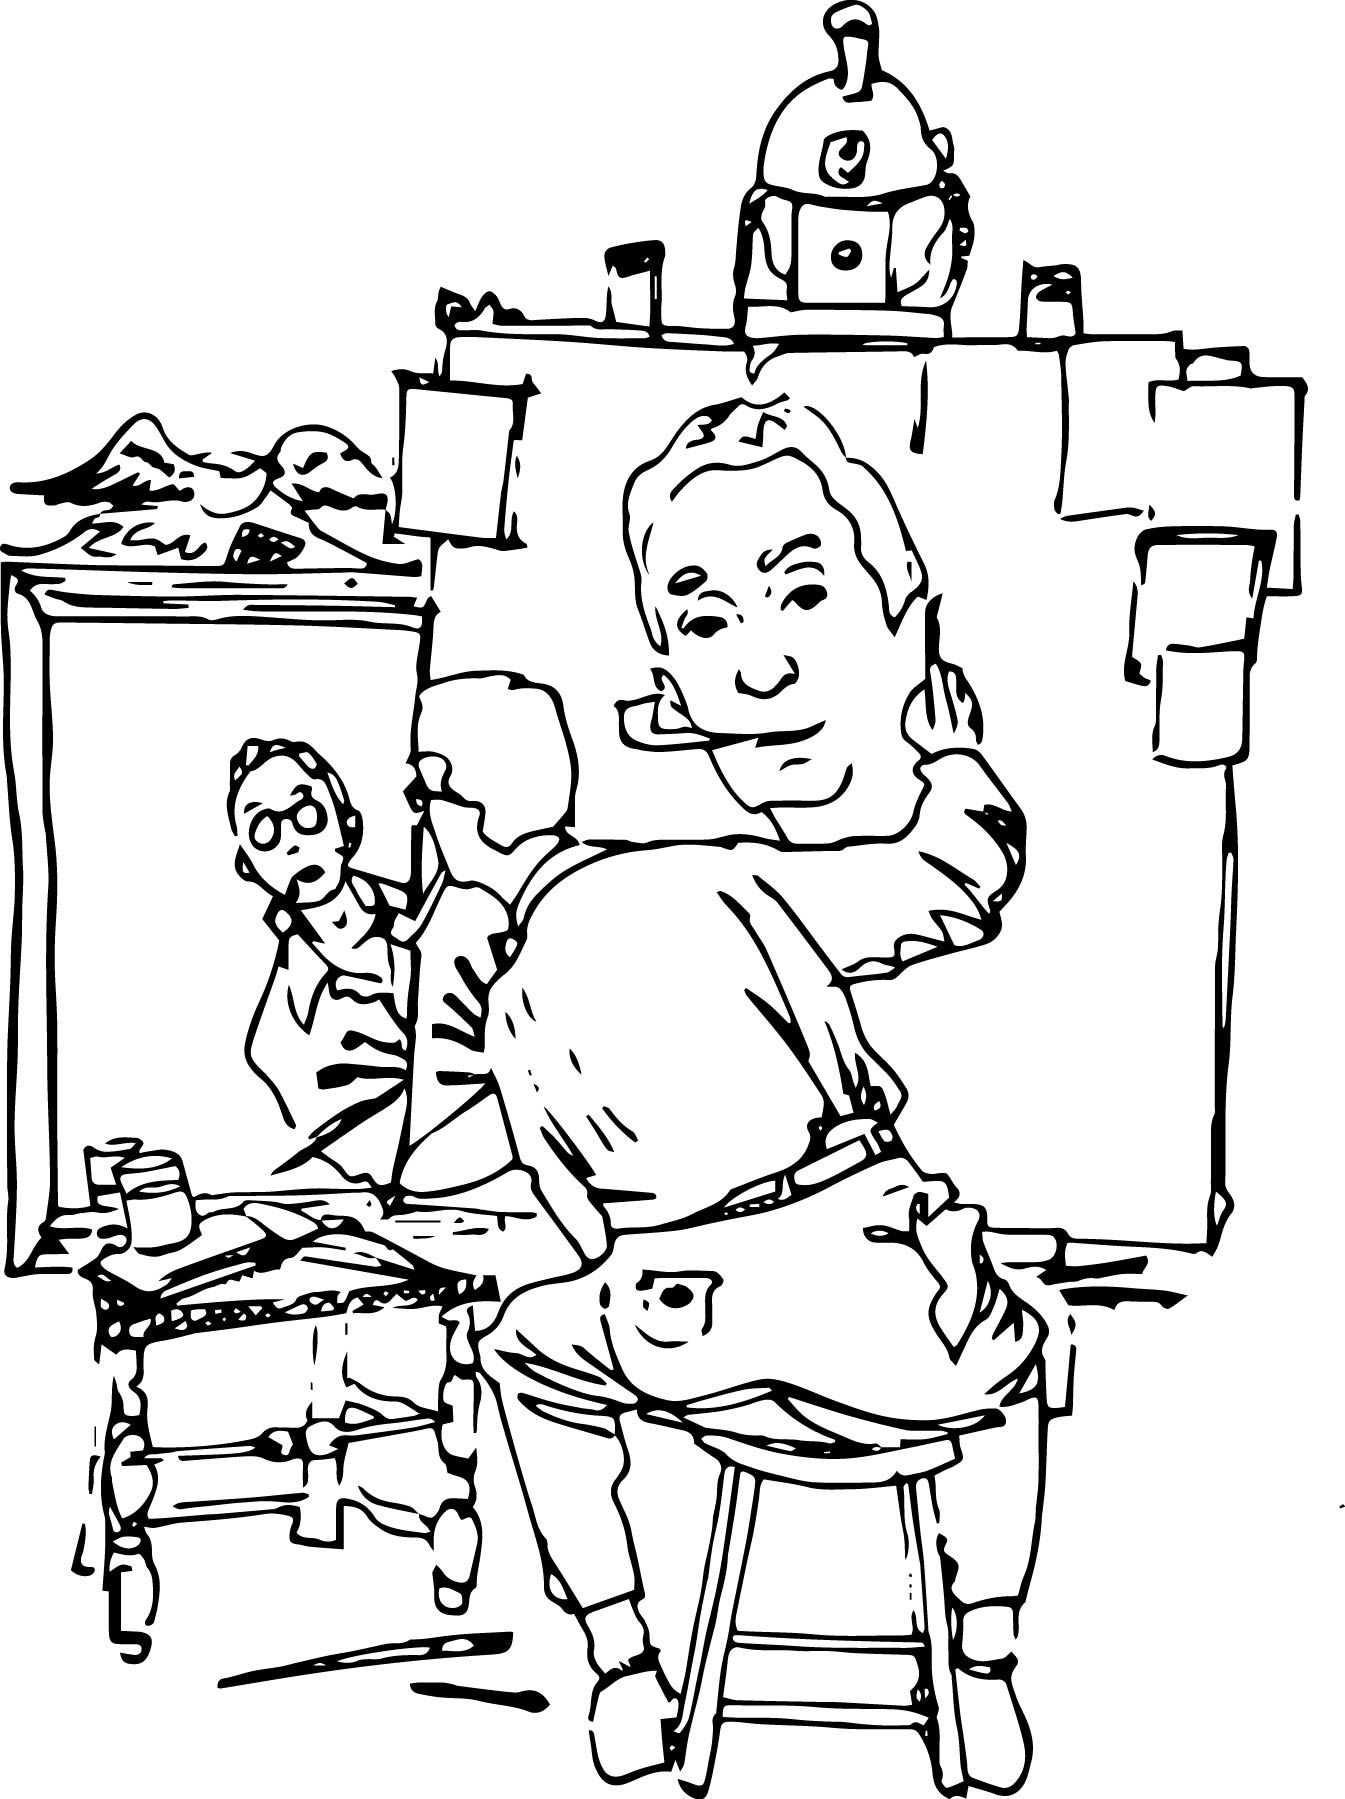 Norman Rockwell Coloring Pages | Norman rockwell and Norman